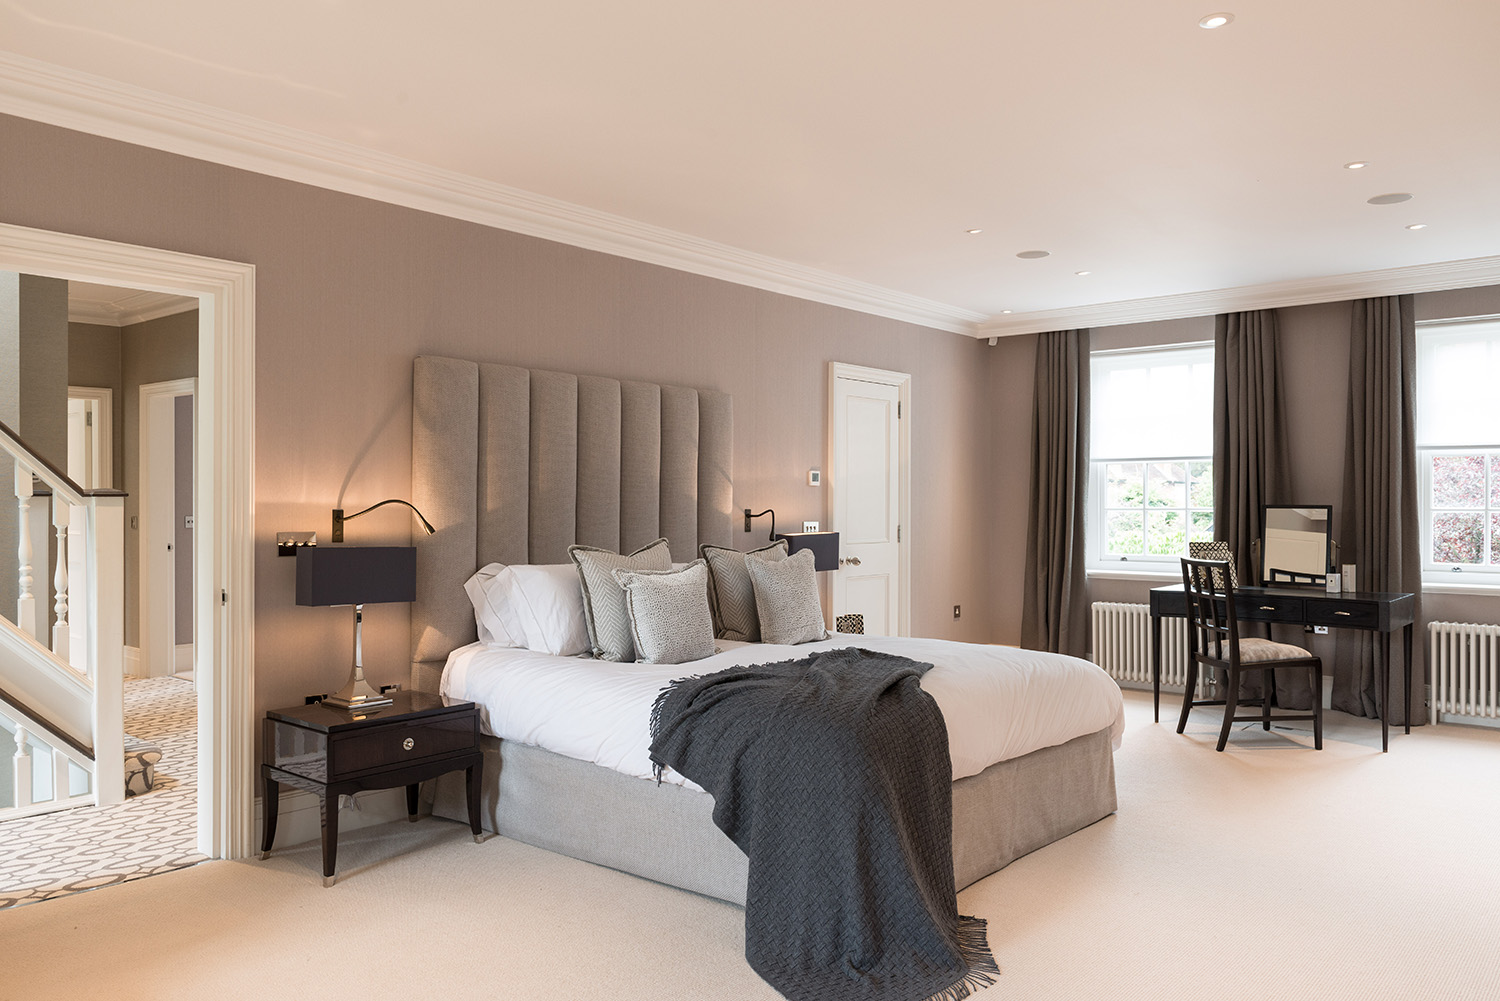 Hampstead family home n6 design box london luxury for Home n decor interior design